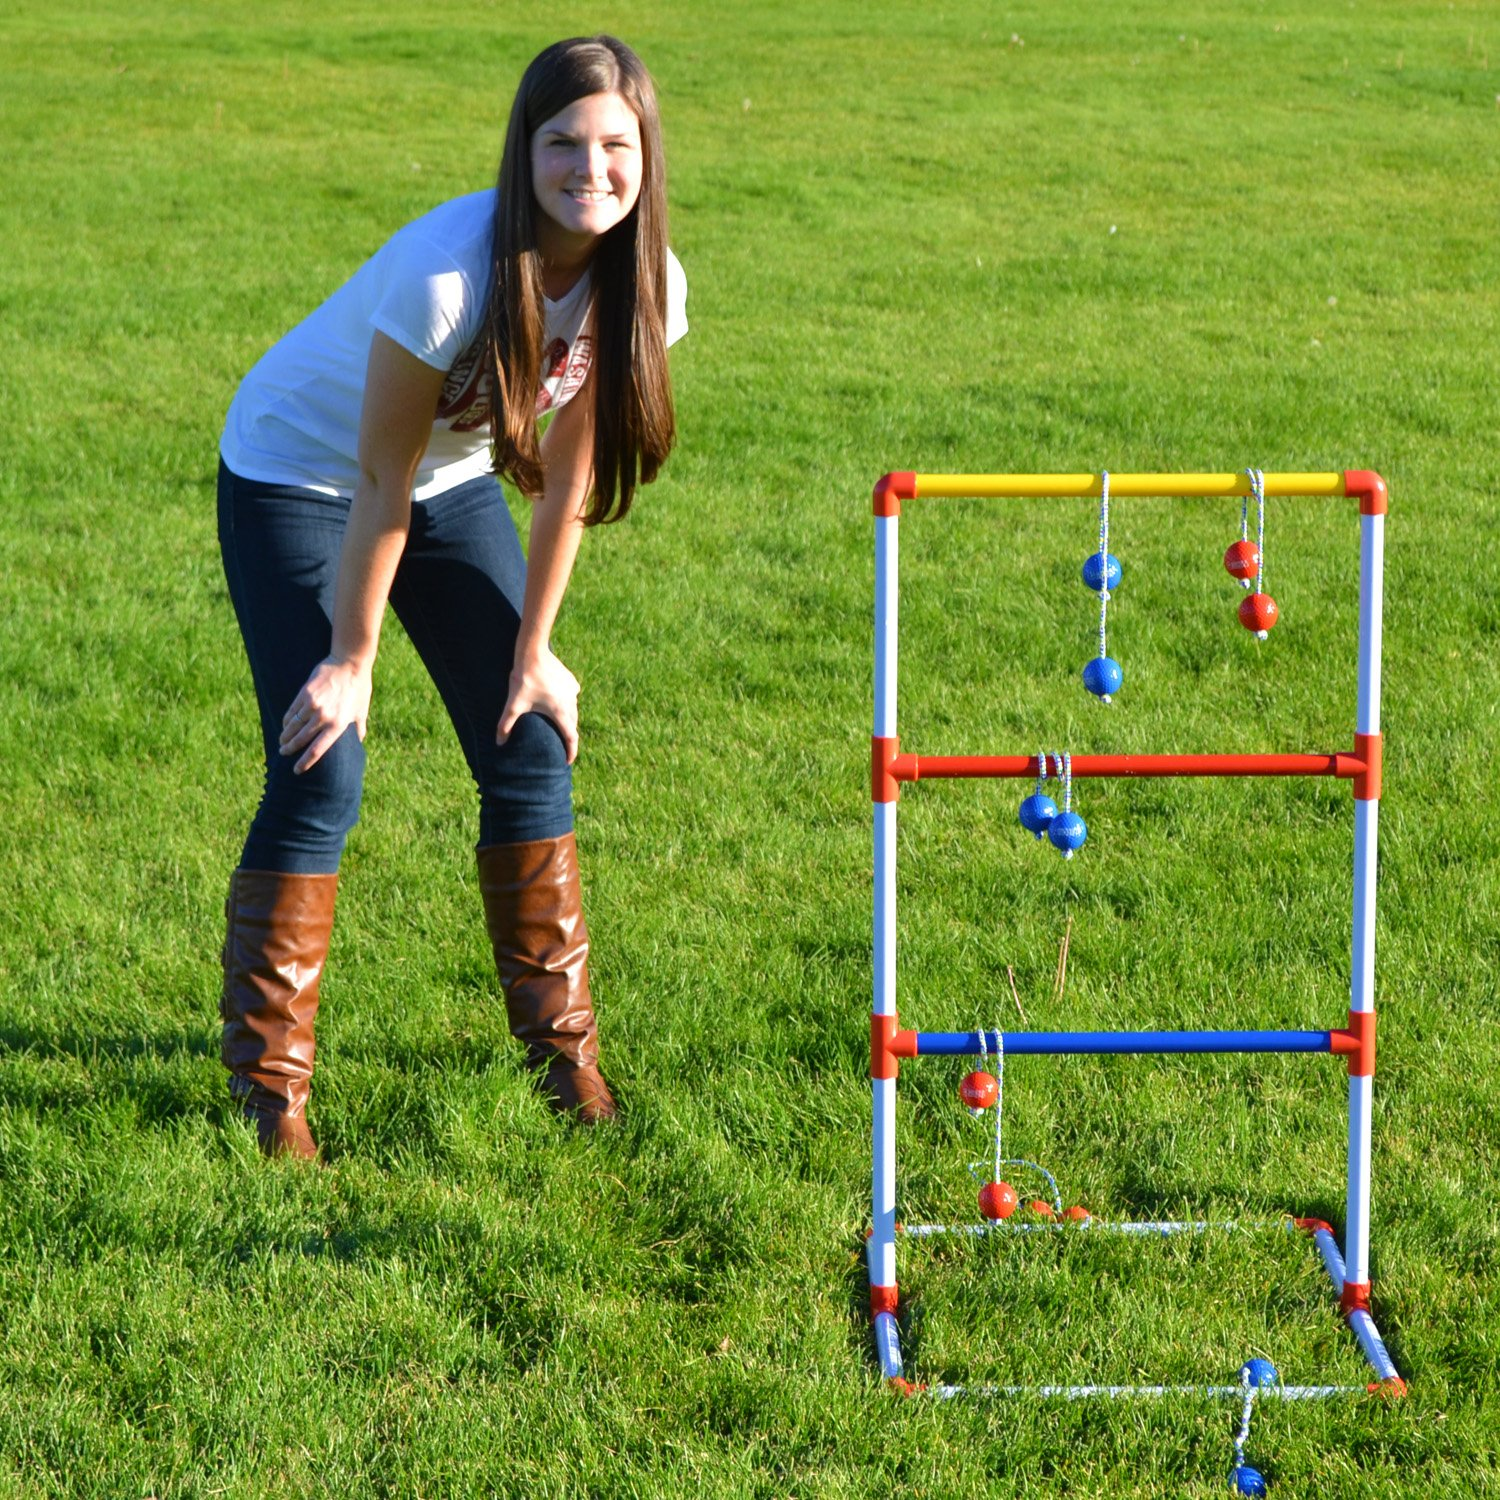 Sports tailgating go pong premium ladder golf balls toss for Gardening tools 94 game answers